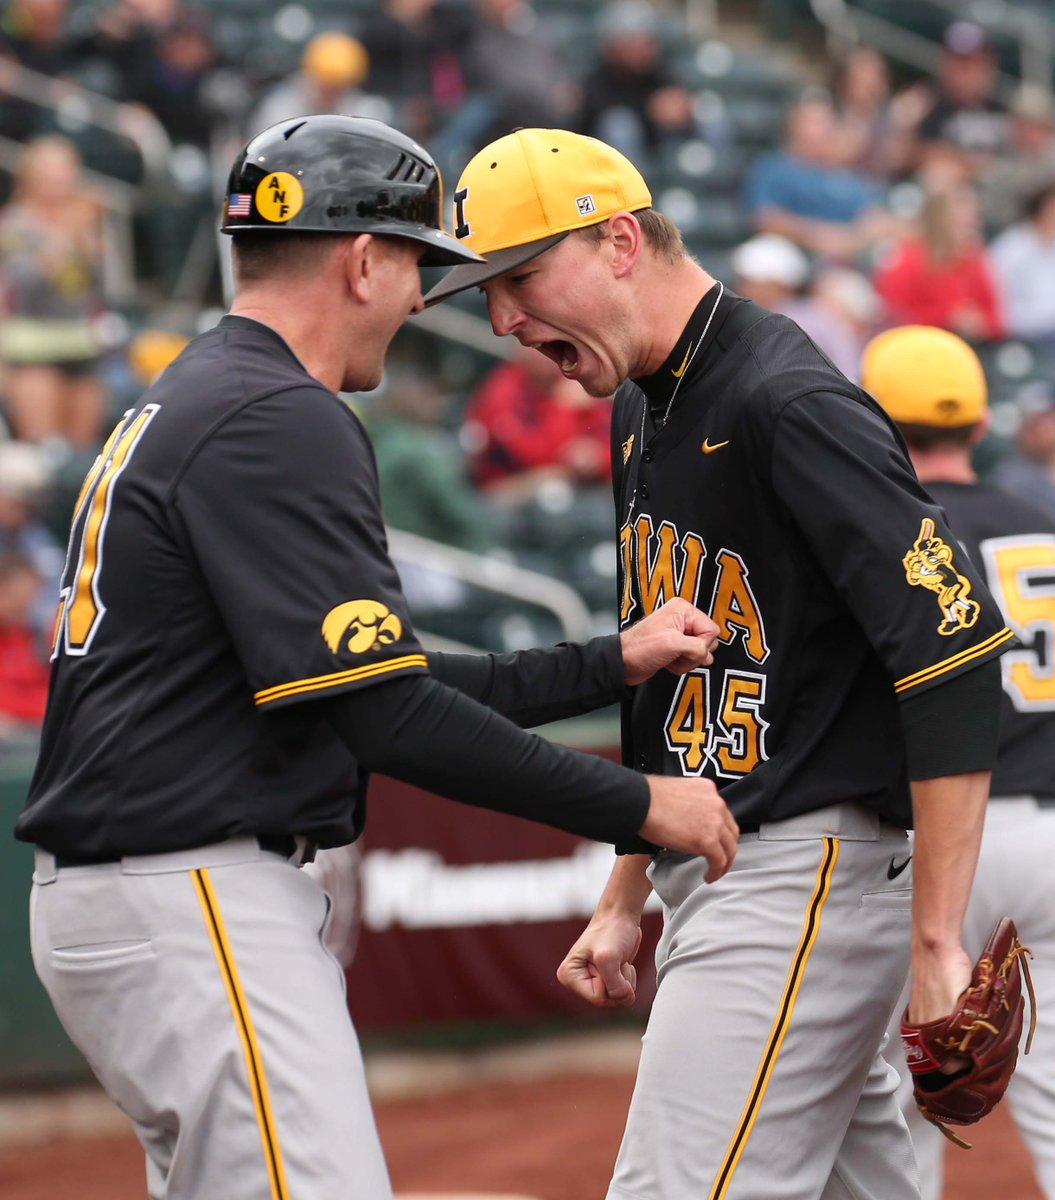 Iowa Baseball (@UIBaseball): This is the reaction when you get out of a bases loaded, nobody out jam!  #LetsDoItAgain #Hawkeyes @NickHibbing http://t.co/8FaW6UaHLo